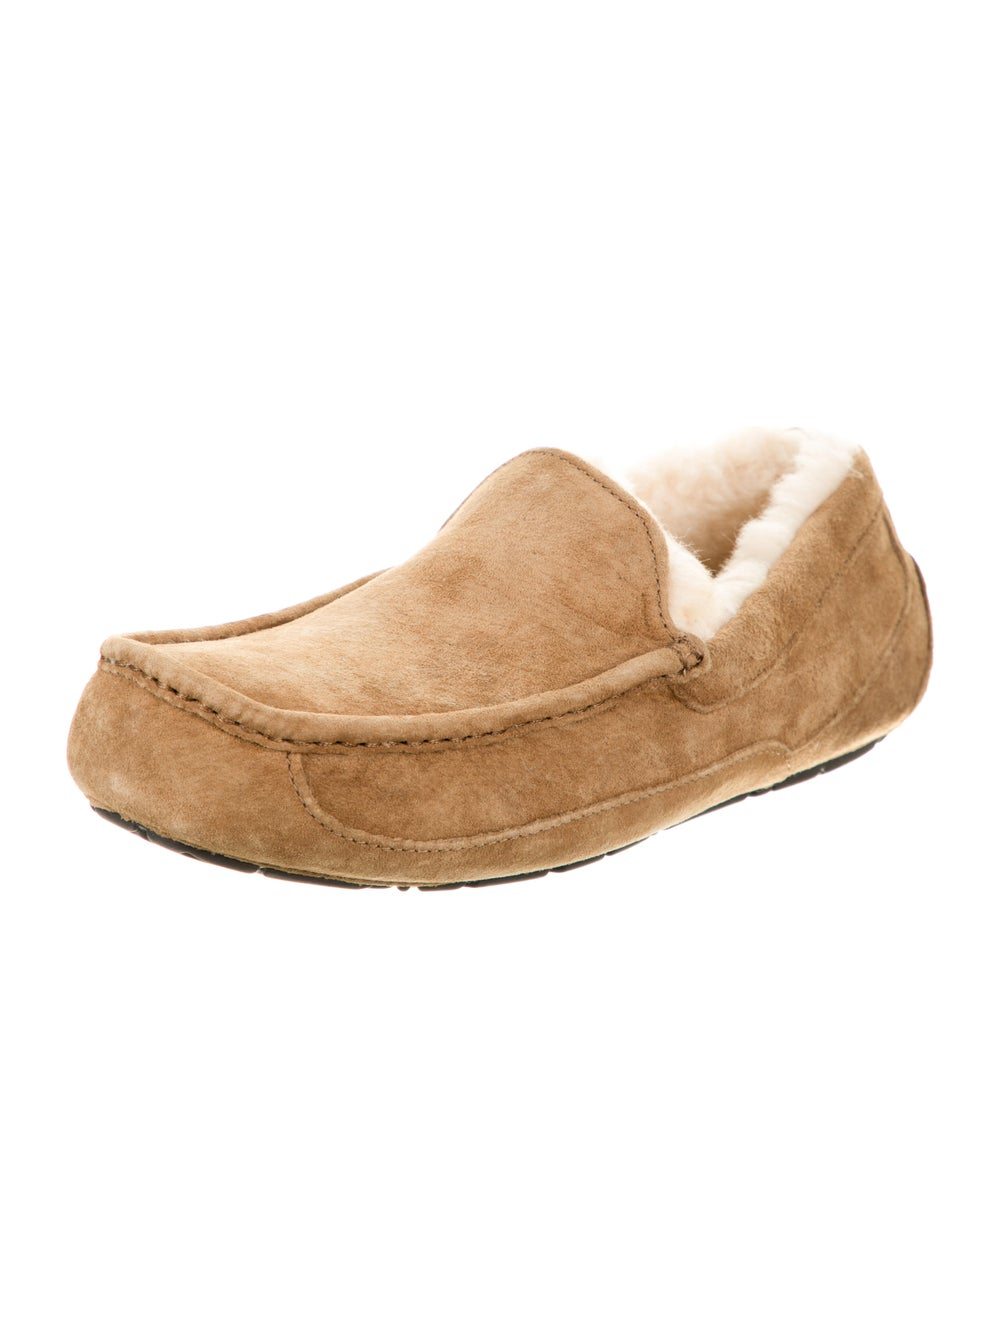 UGG Suede Slippers - image 2